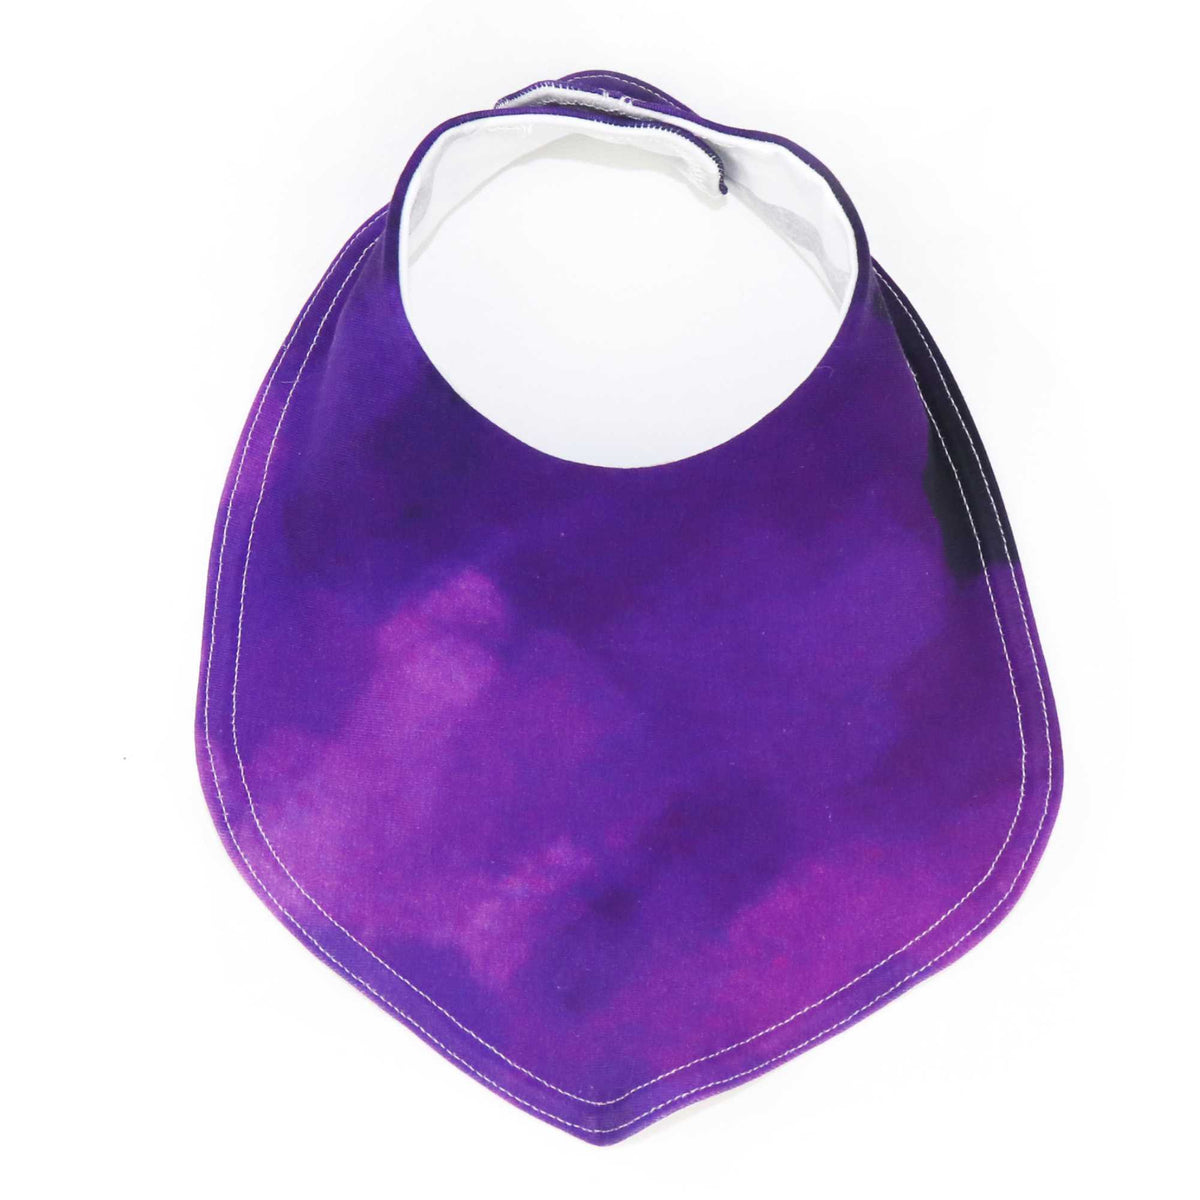 Foodie Bib in Enchanted Purple